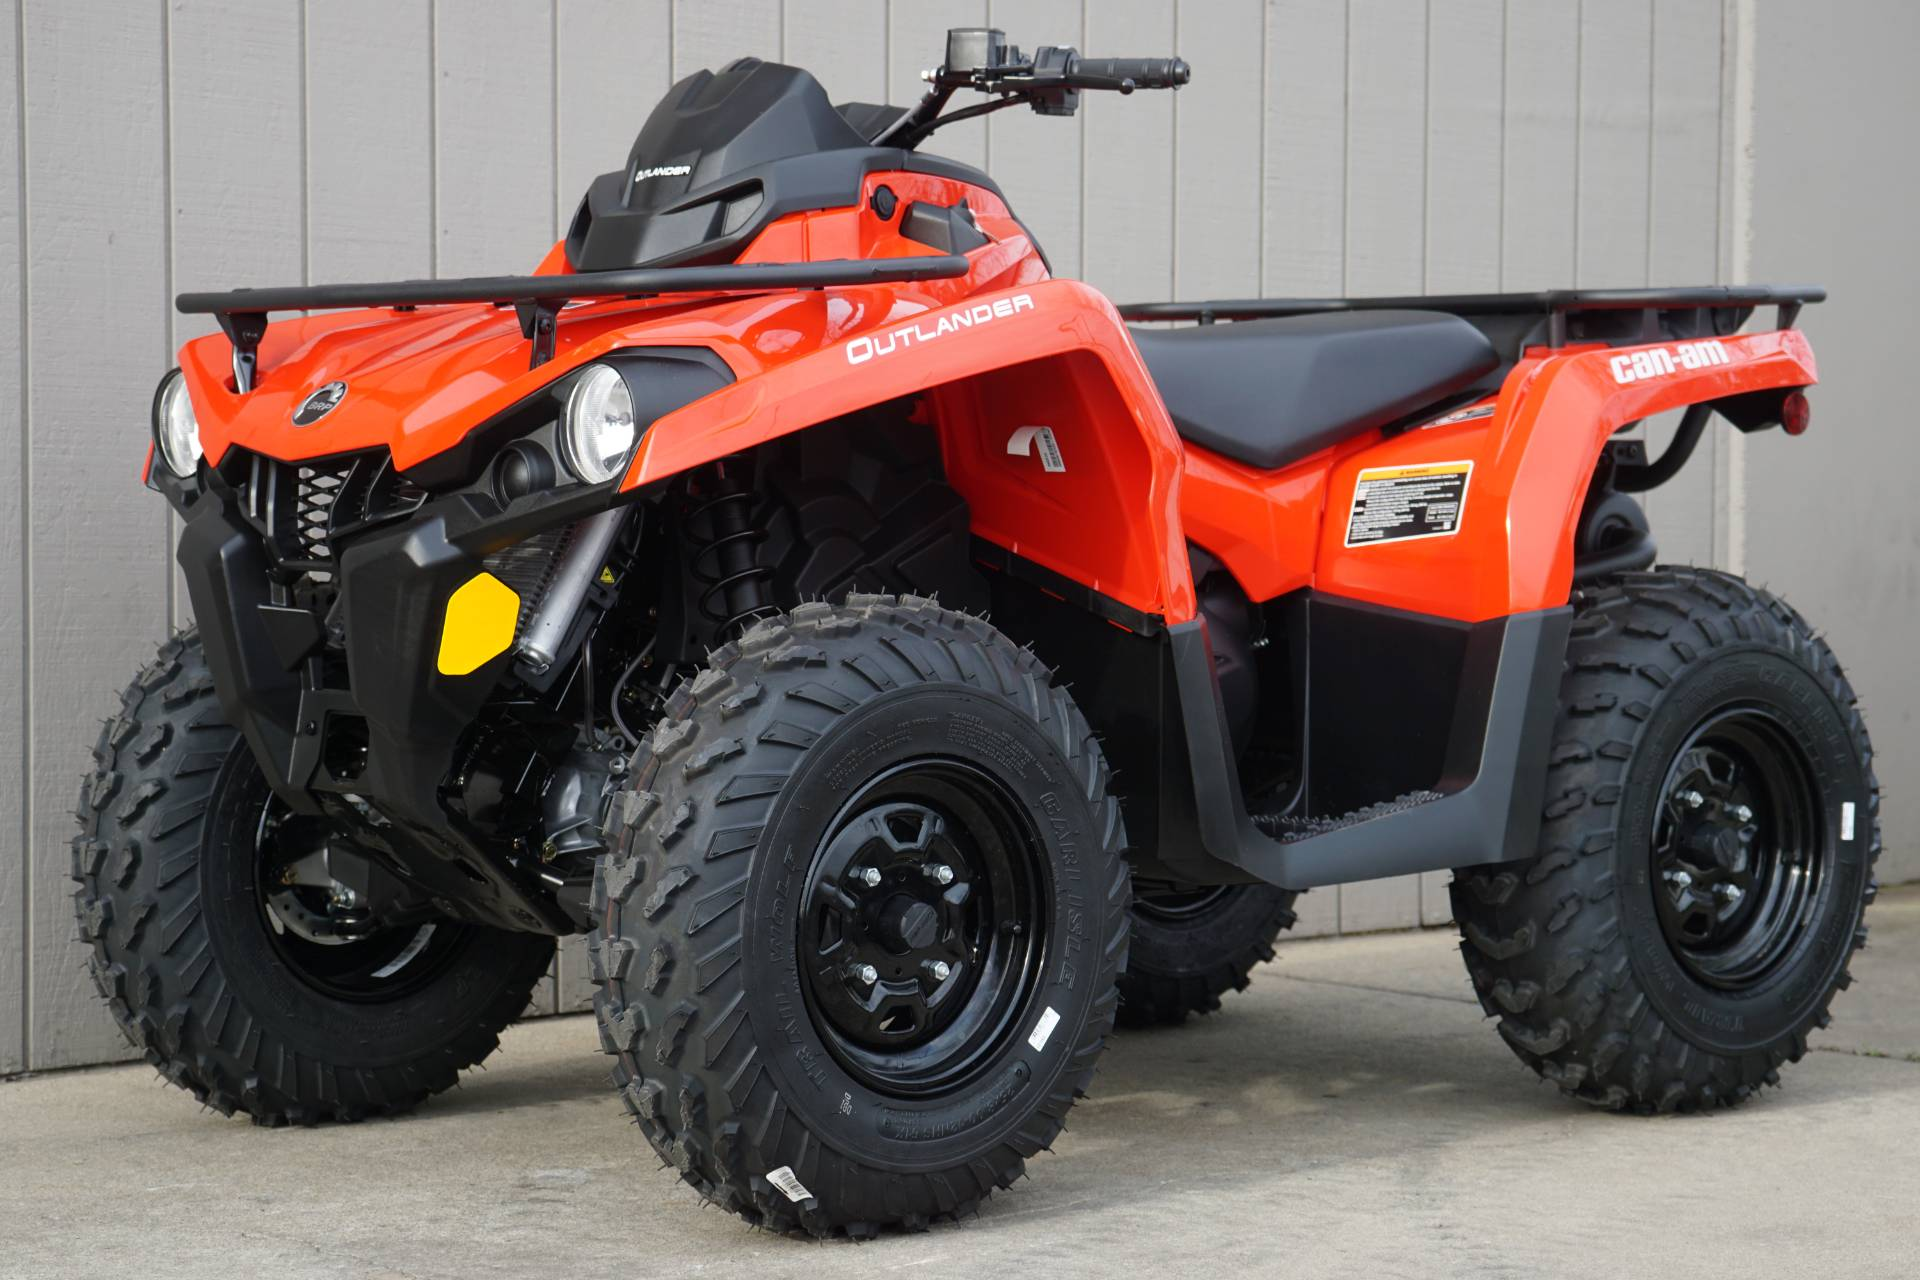 2019 Can-Am Outlander 450 for sale 7217